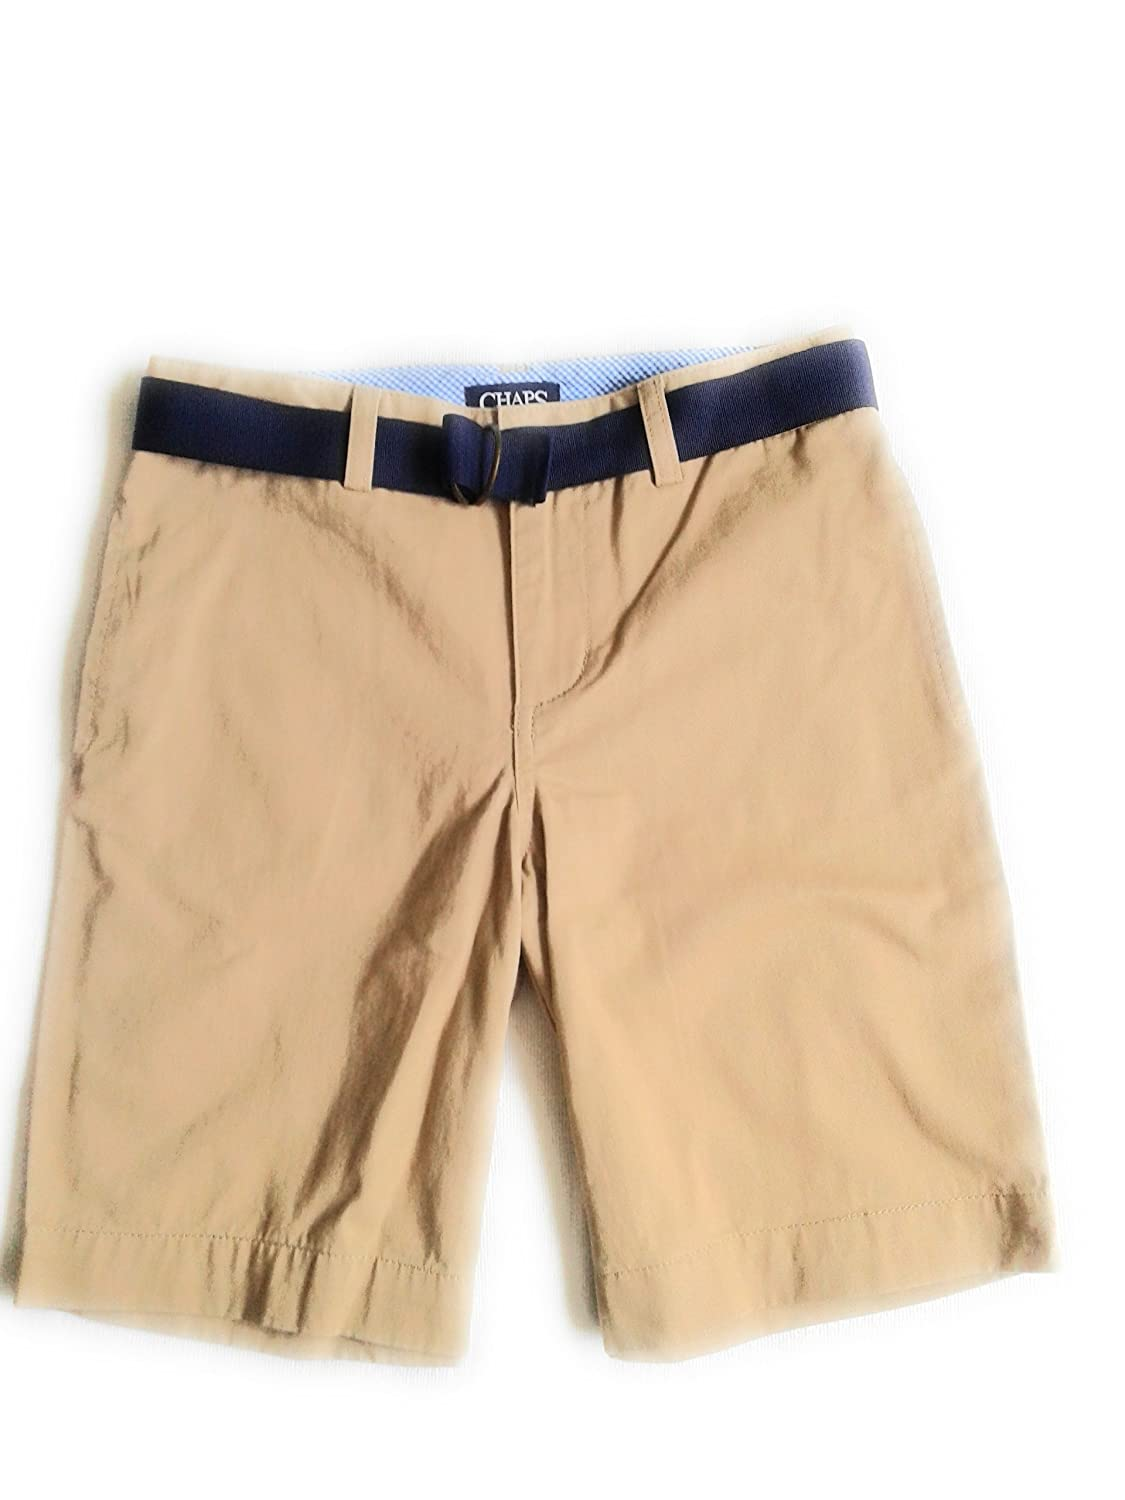 Chaps Boys Shorts withベルトカーキ綿100?%